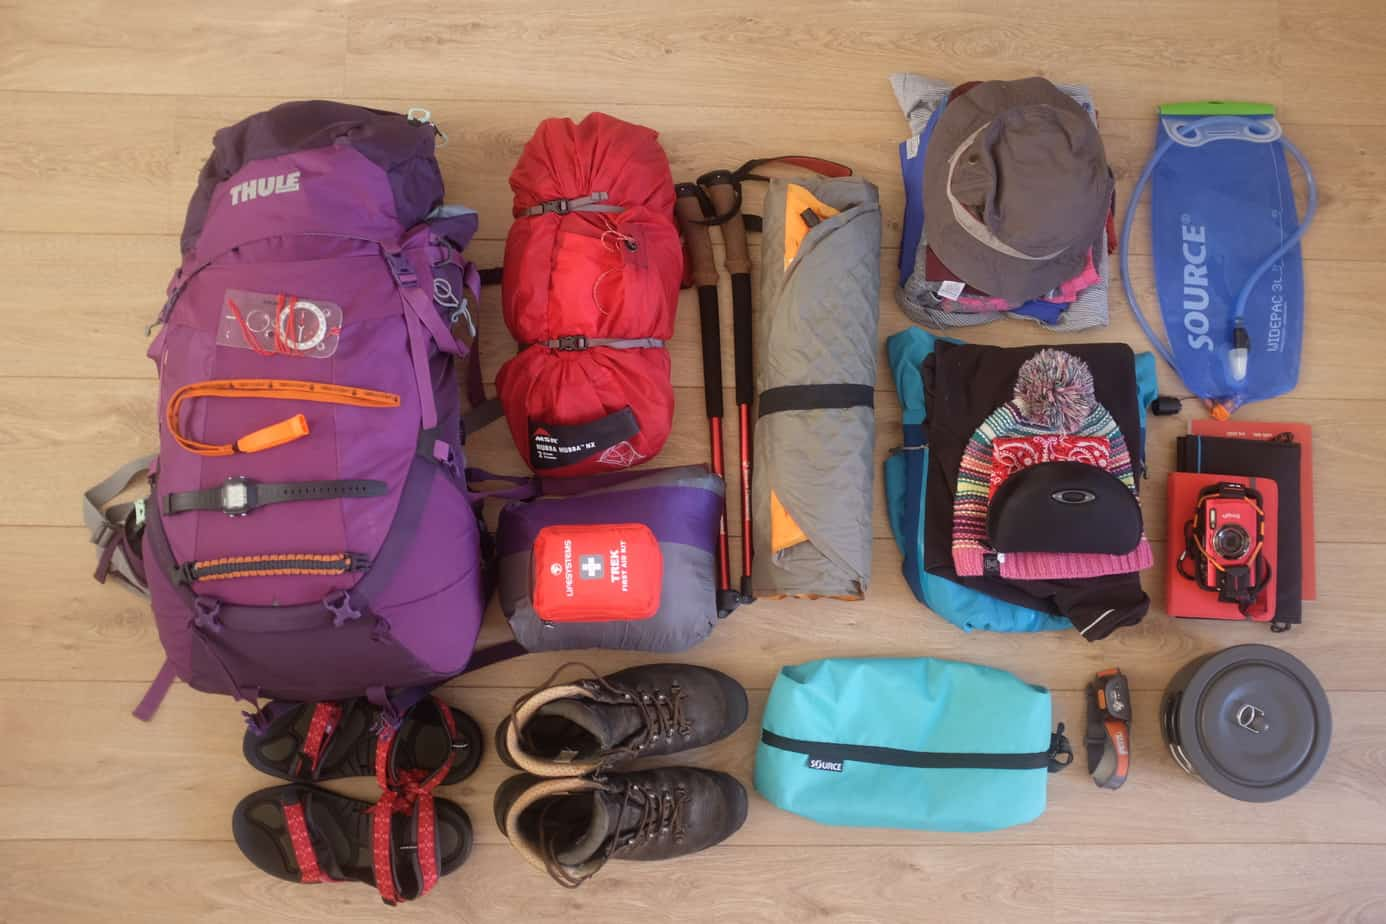 Israel National Trail kit list